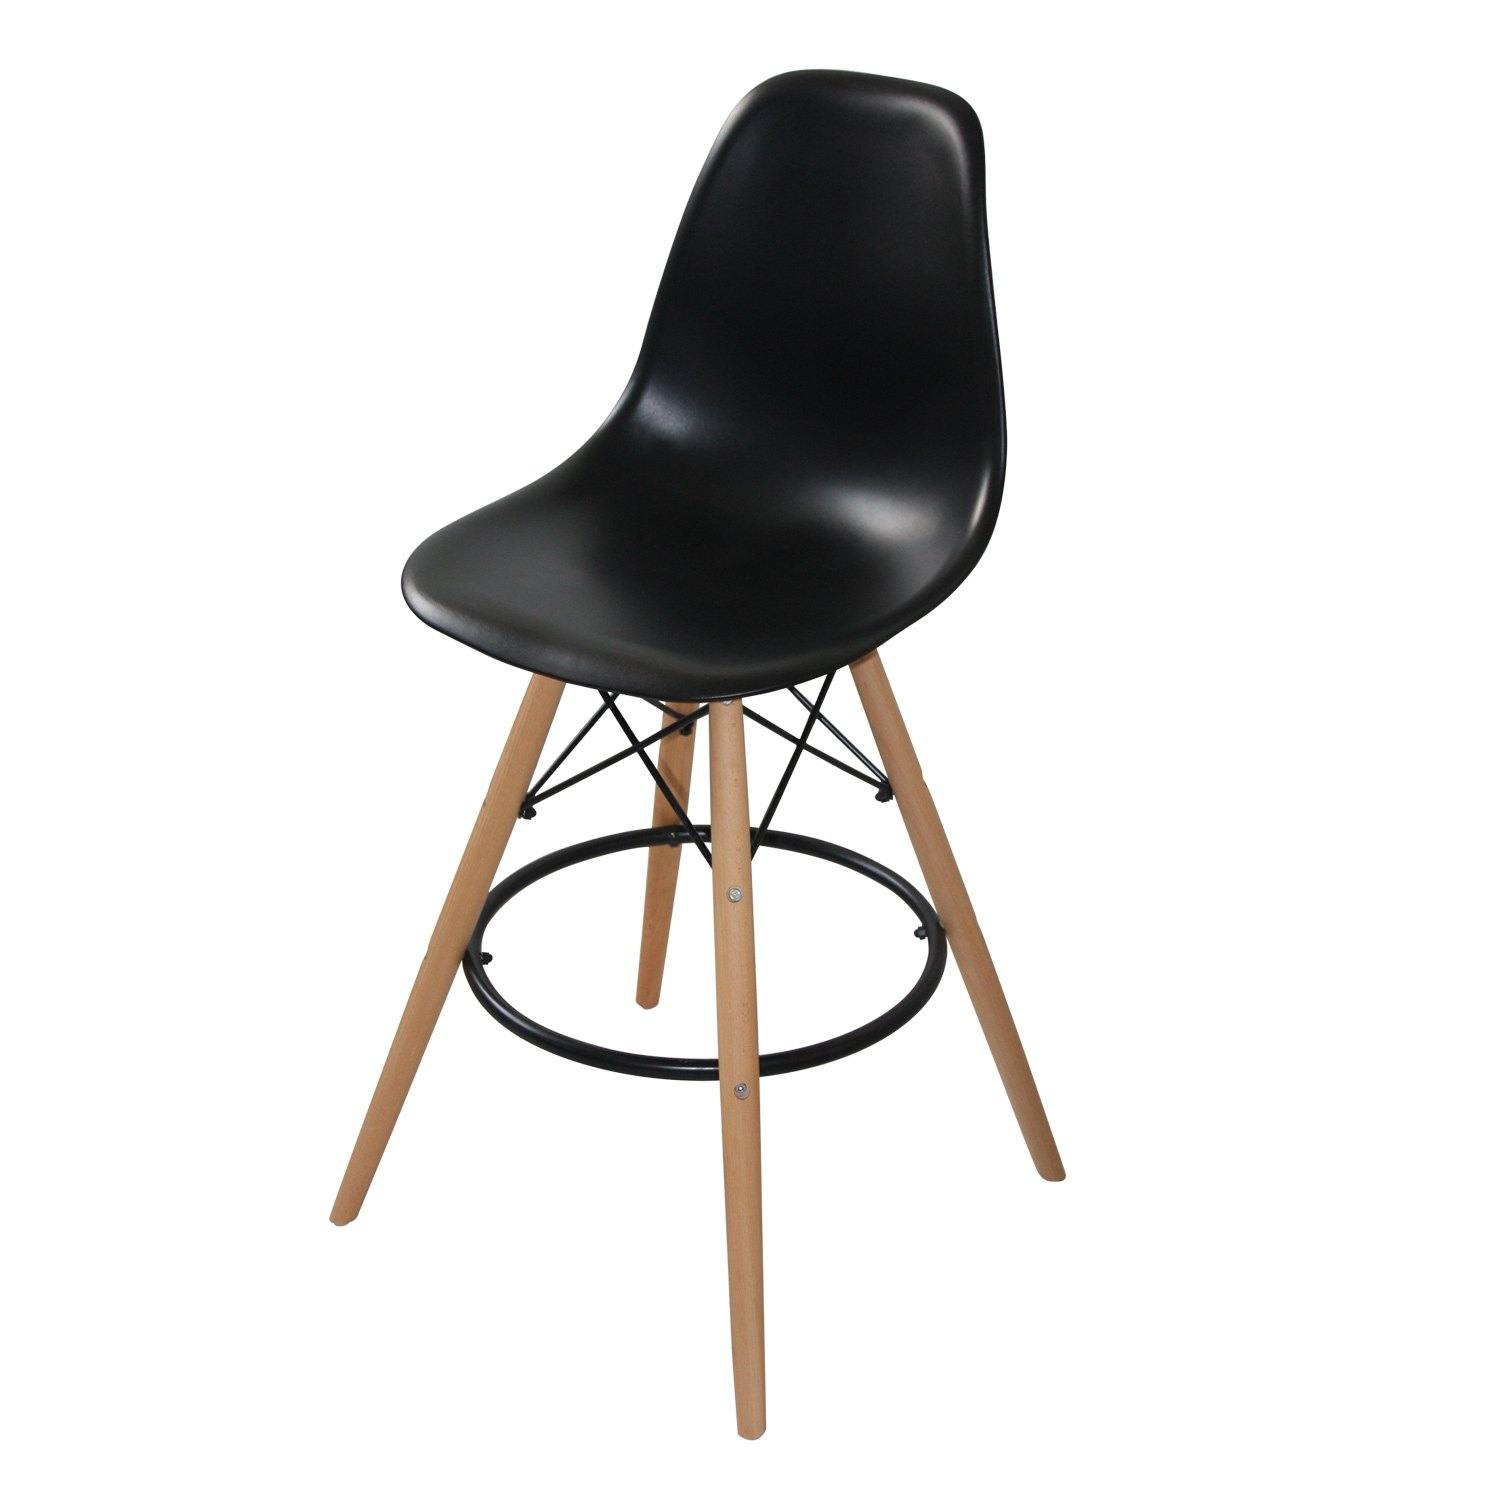 Sgabello tower wood comprare sgabelli eames online for Comprare sedie